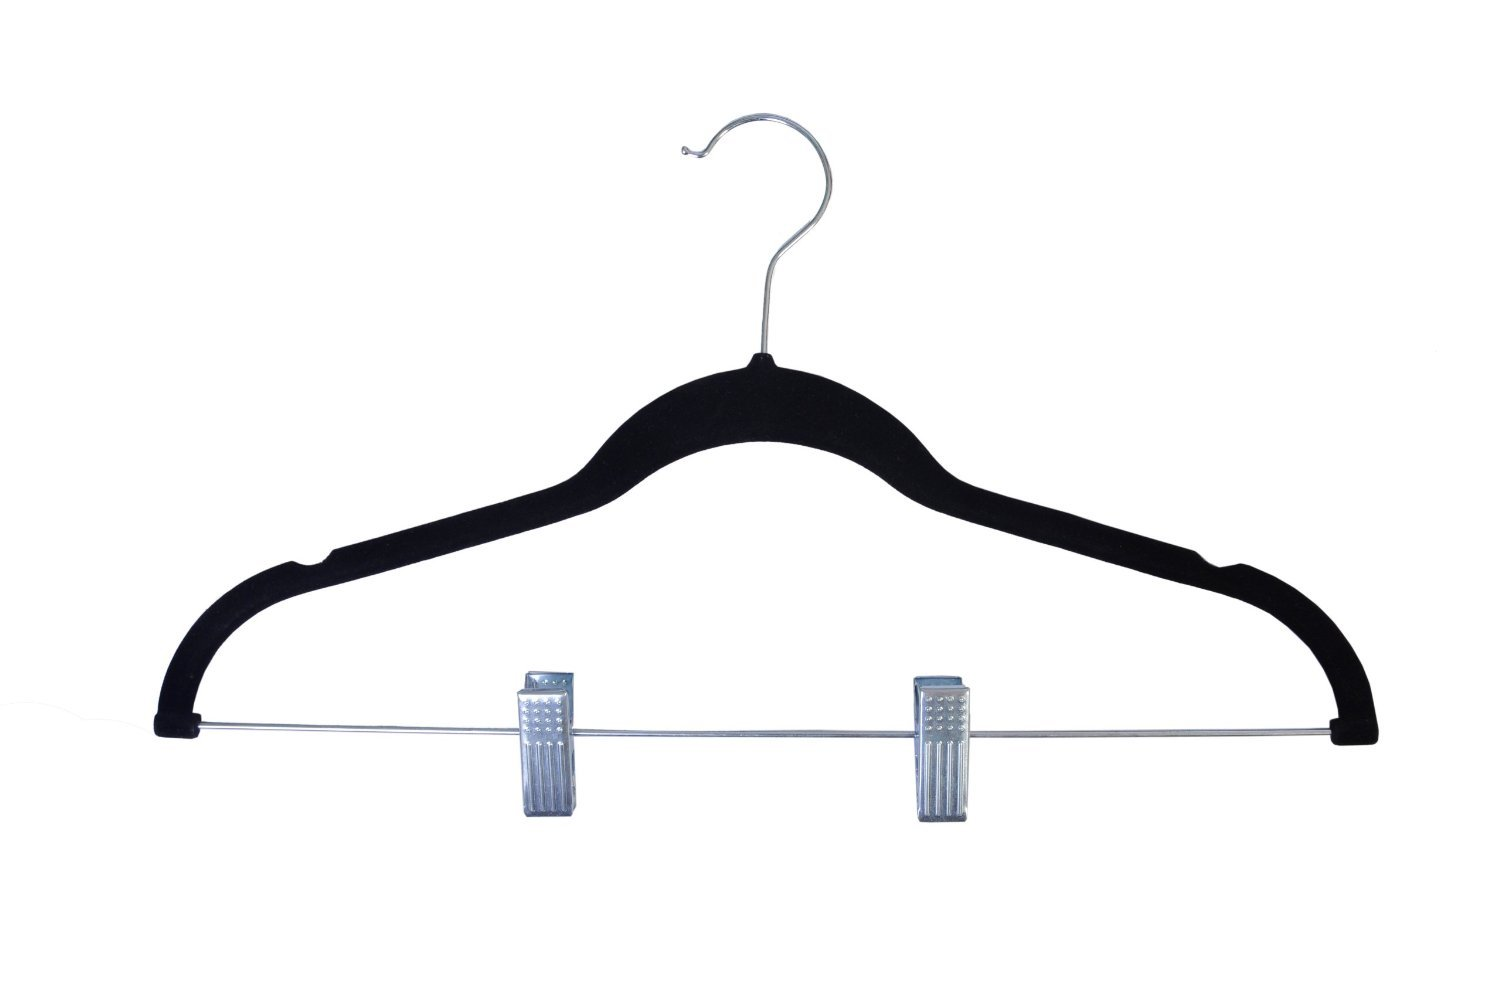 Metal Suit Hangers Hanger With Metal Clips